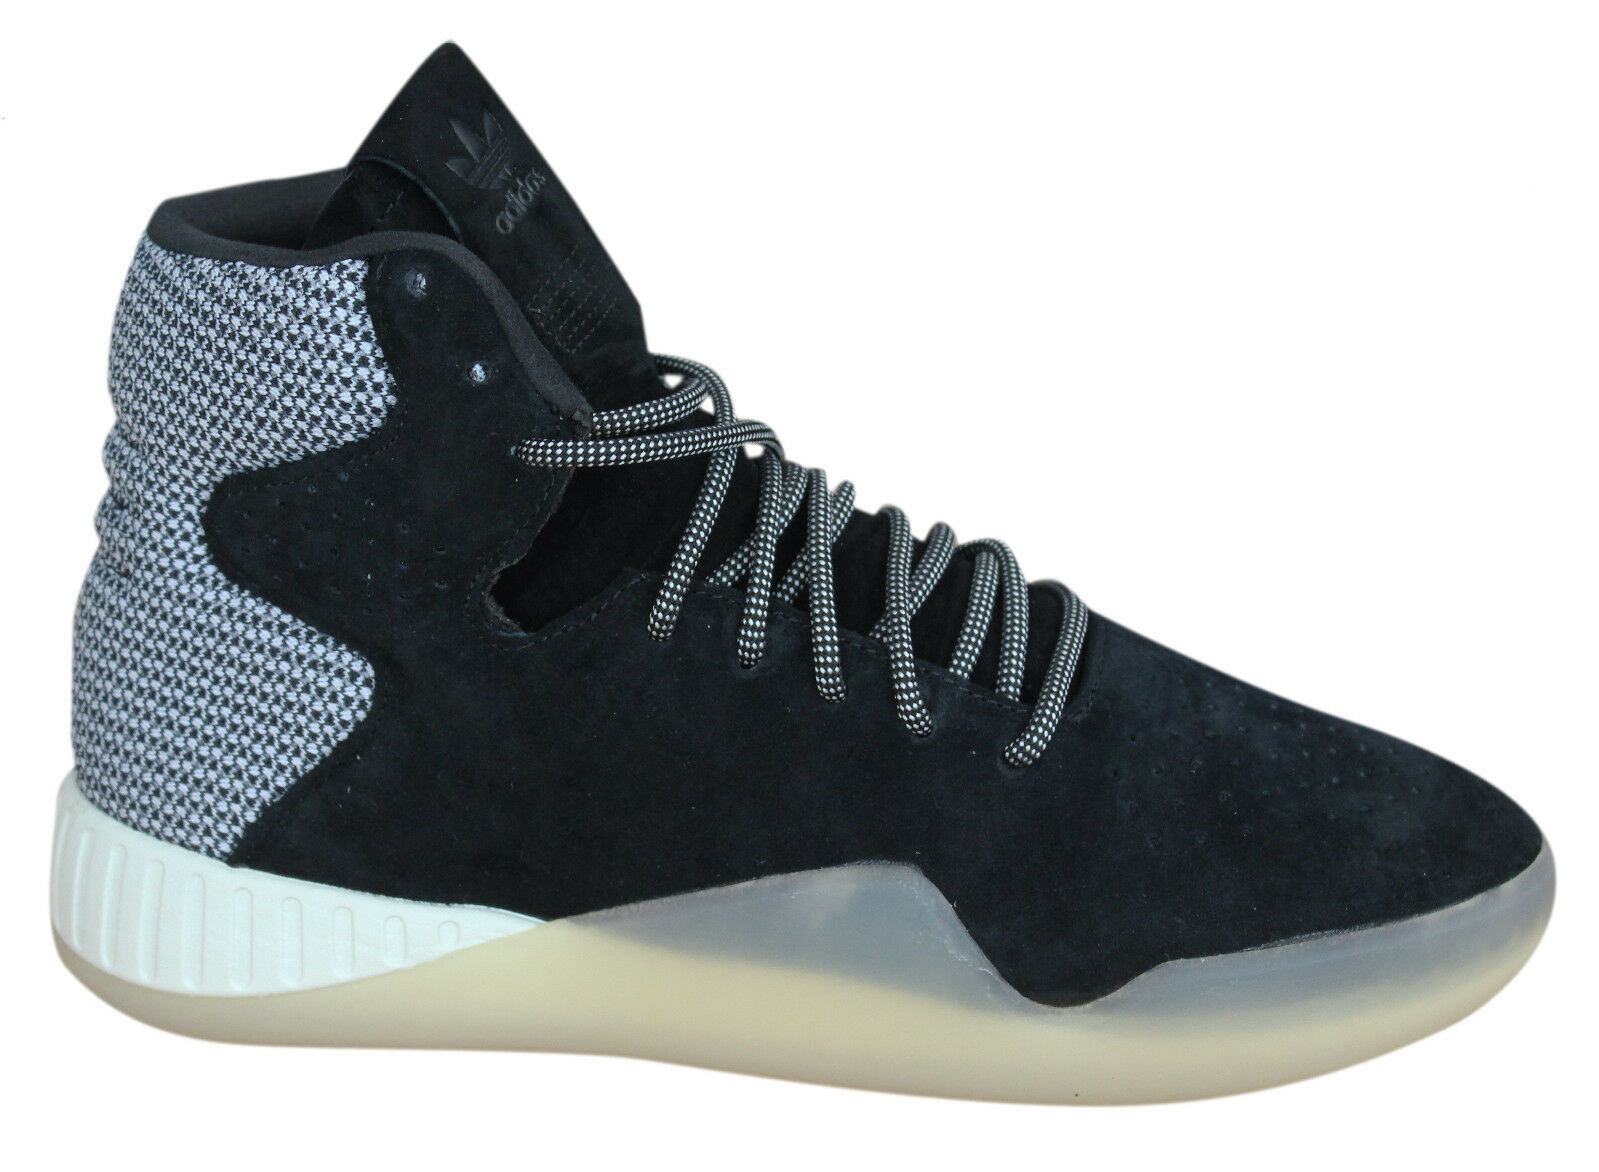 Adidas Tubular Instinct Lace Up Black Leather Opp Suede Hi Trainers S80088 Opp Leather M10 846ece